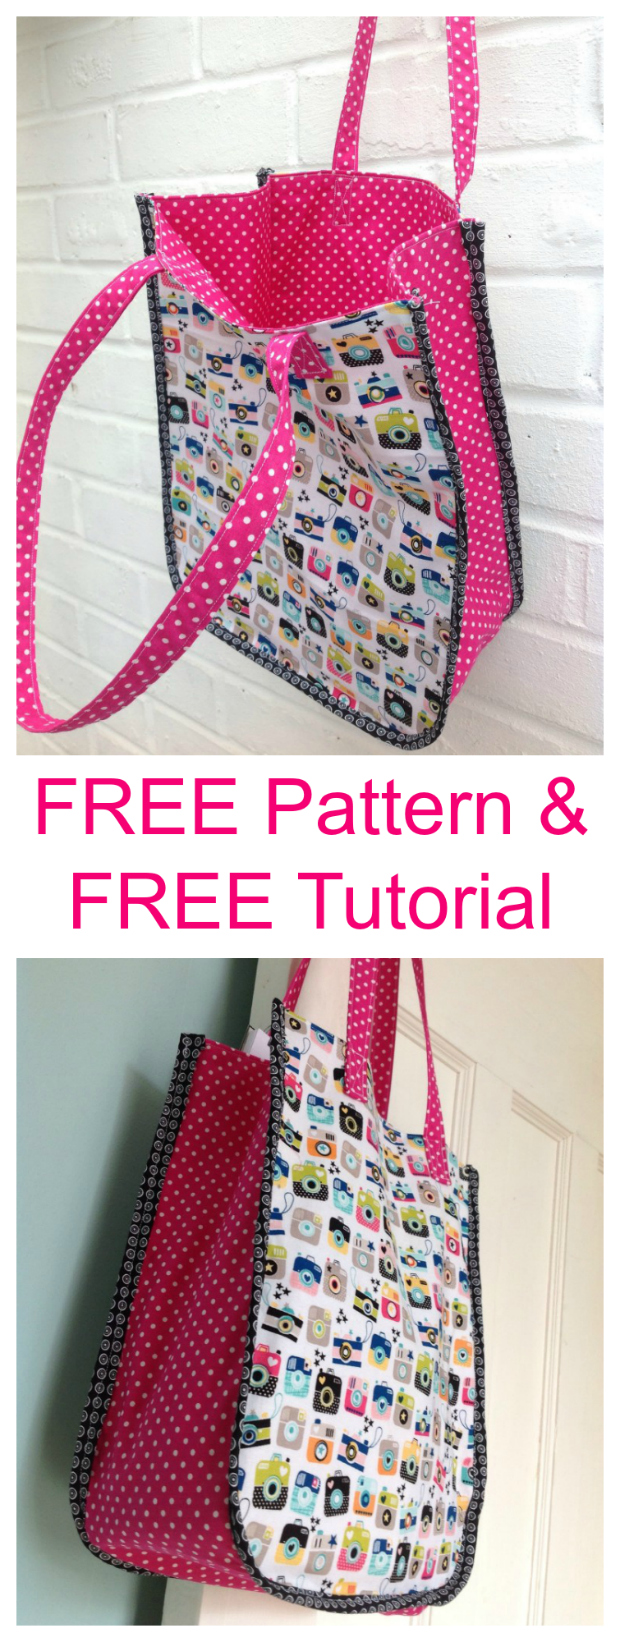 SewModernBags loves to bring you FREE patterns and FREE tutorials and here is an awesome one. The Instamatic Tote Bag gets its name obviously from the cute fabric that was used. This is both an easy to sew Tote Bag and is the perfect size for you.